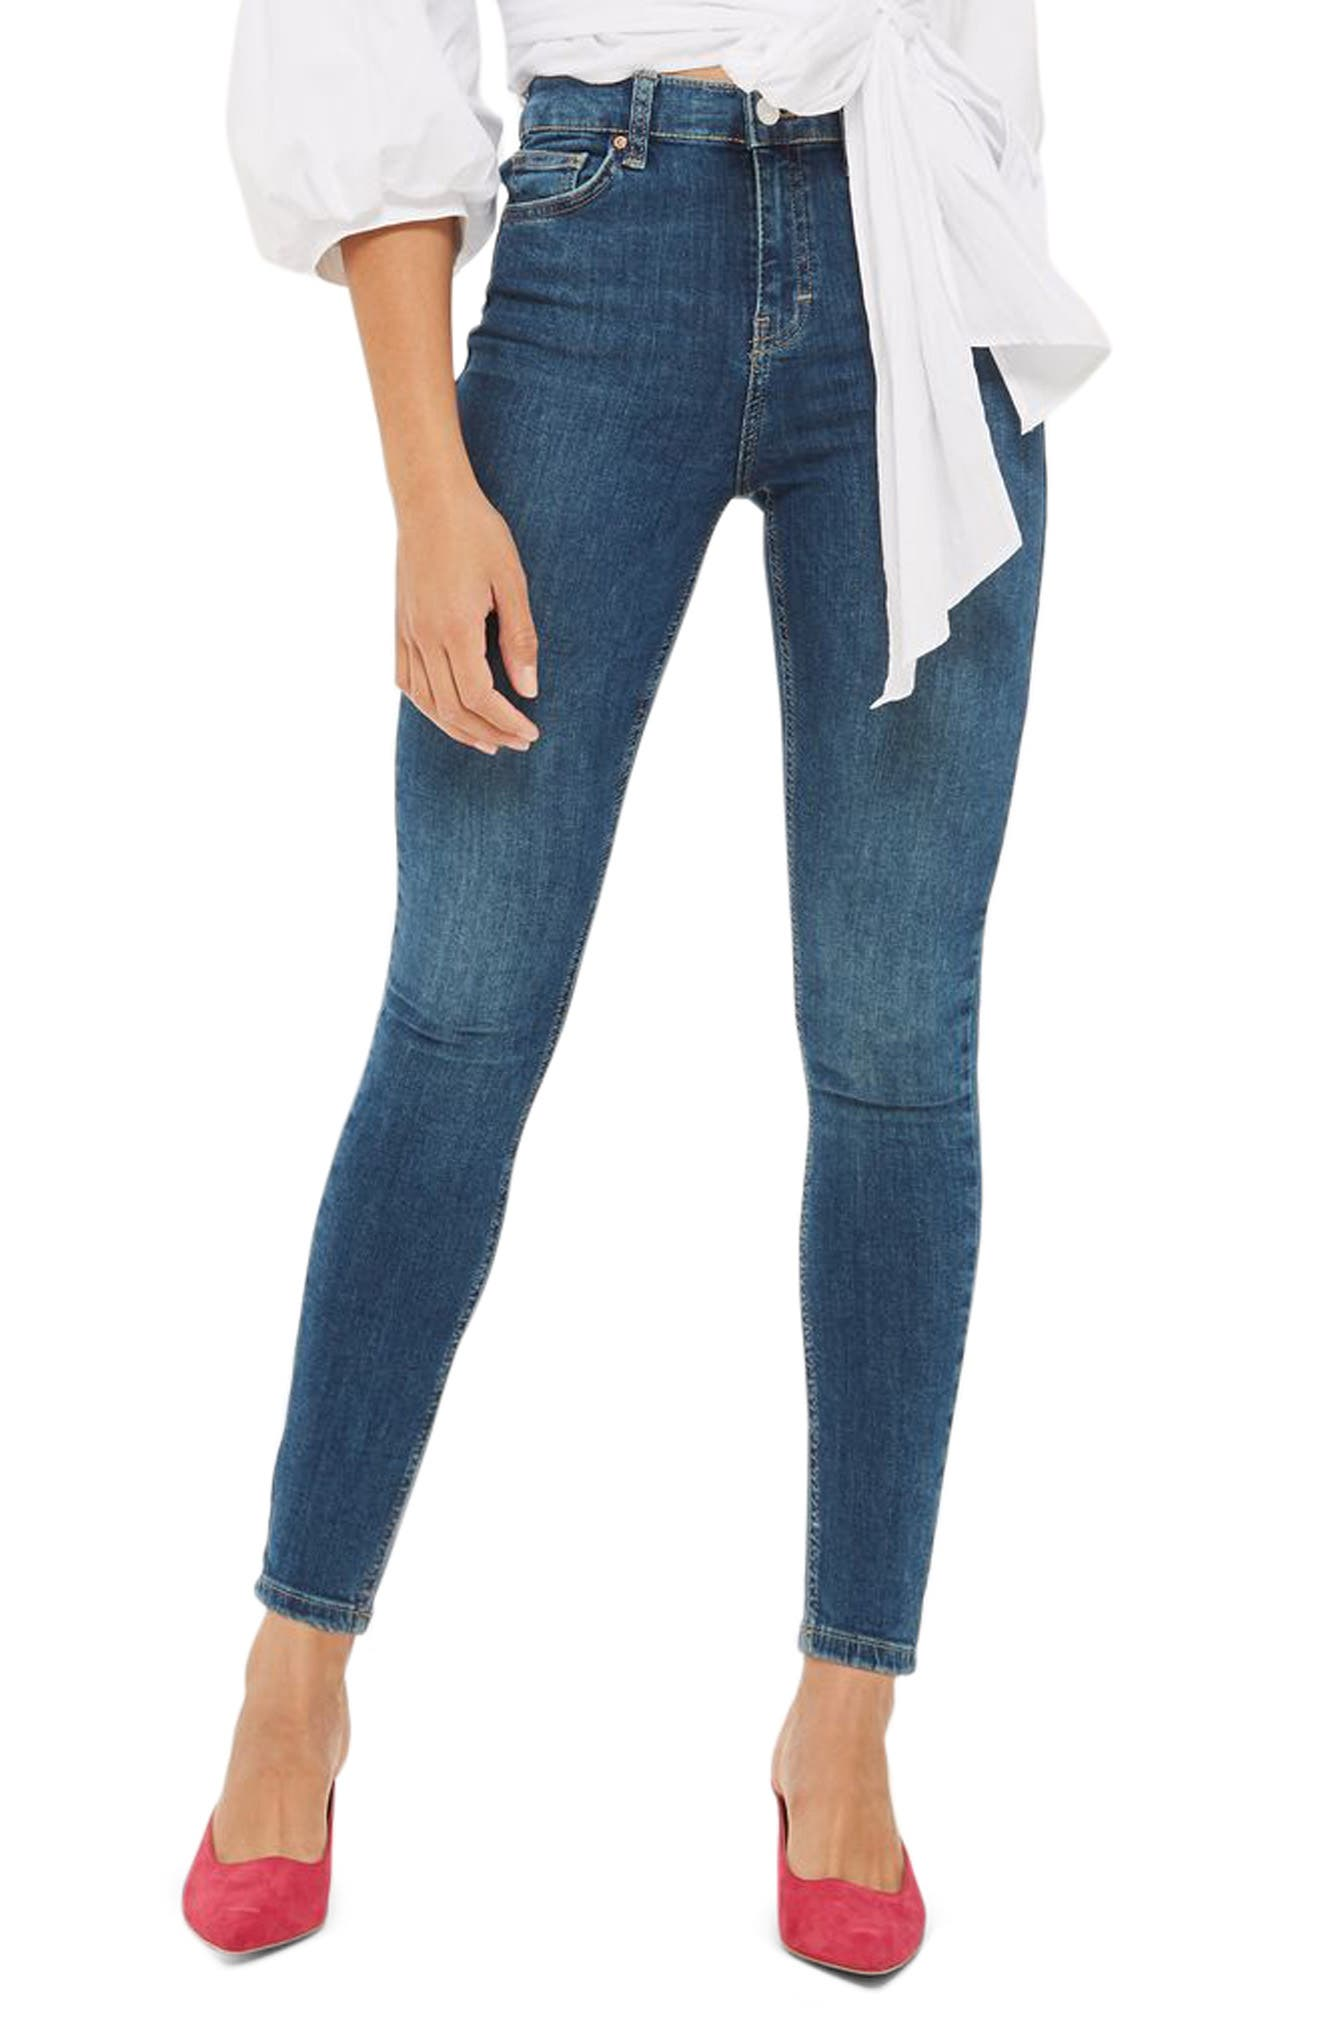 Alternate Image 1 Selected - Topshop Jamie High Waist Crop Skinny Jeans (Blue Green)